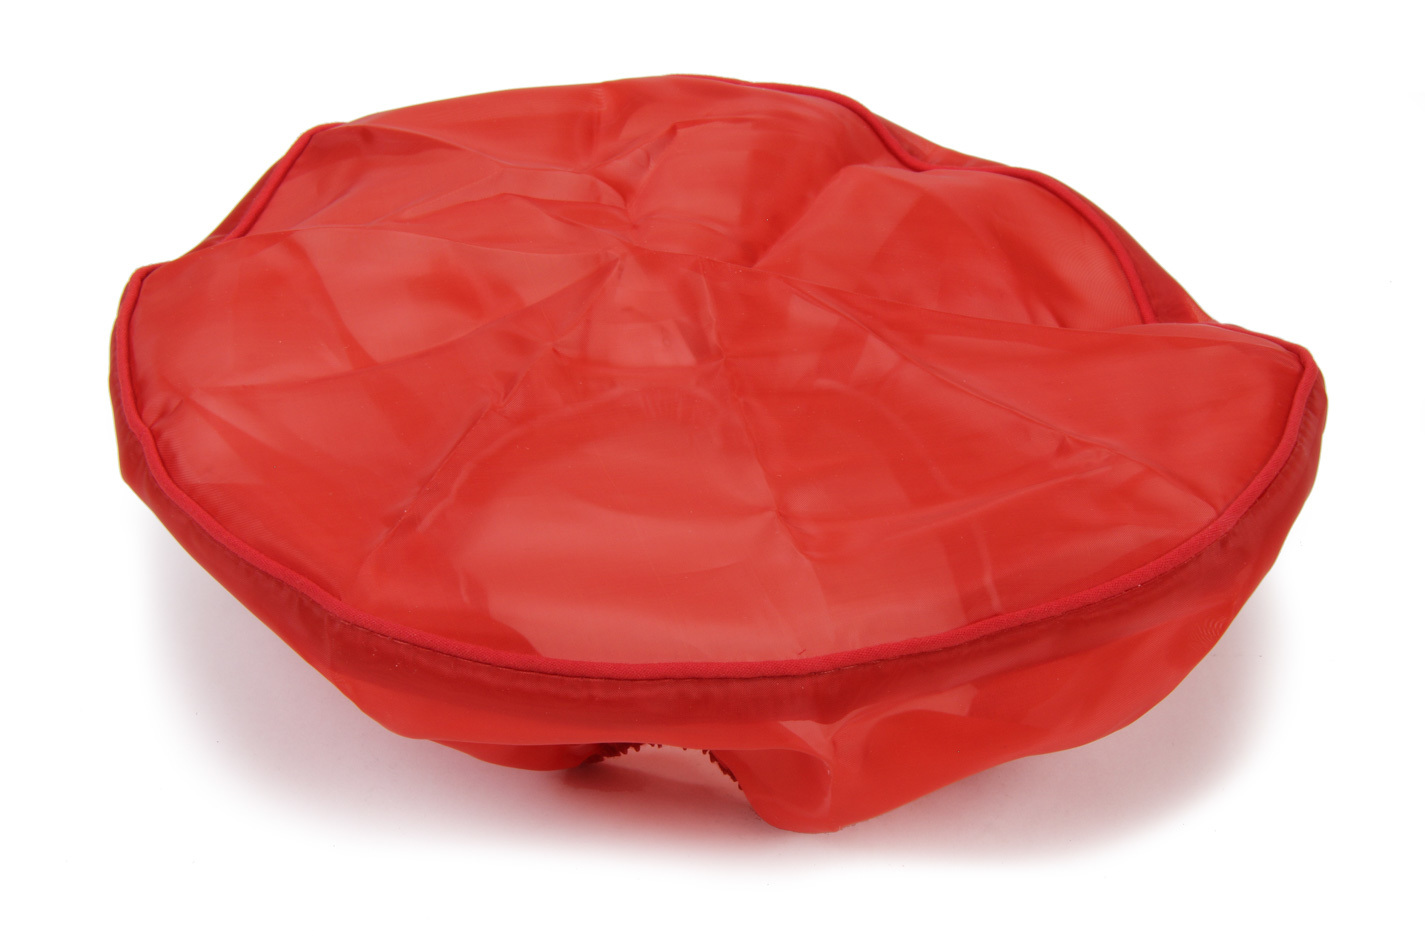 Outerwears 20-1029-03 Funnel Pre Filter, Fuel, Polyester, Red, 9 in Round Funnels, Each